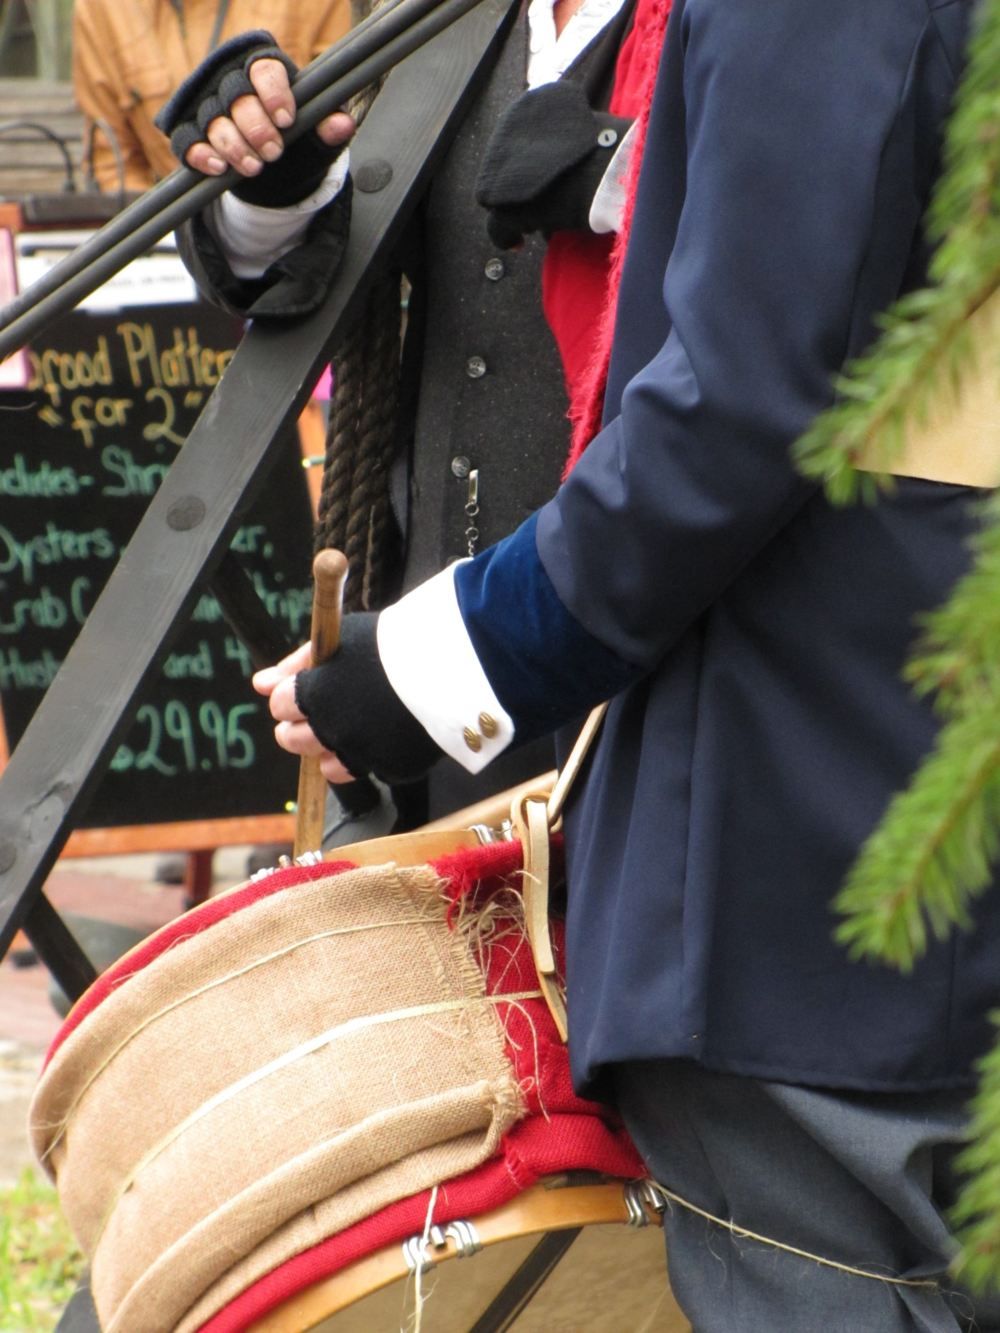 drummer in historic costume